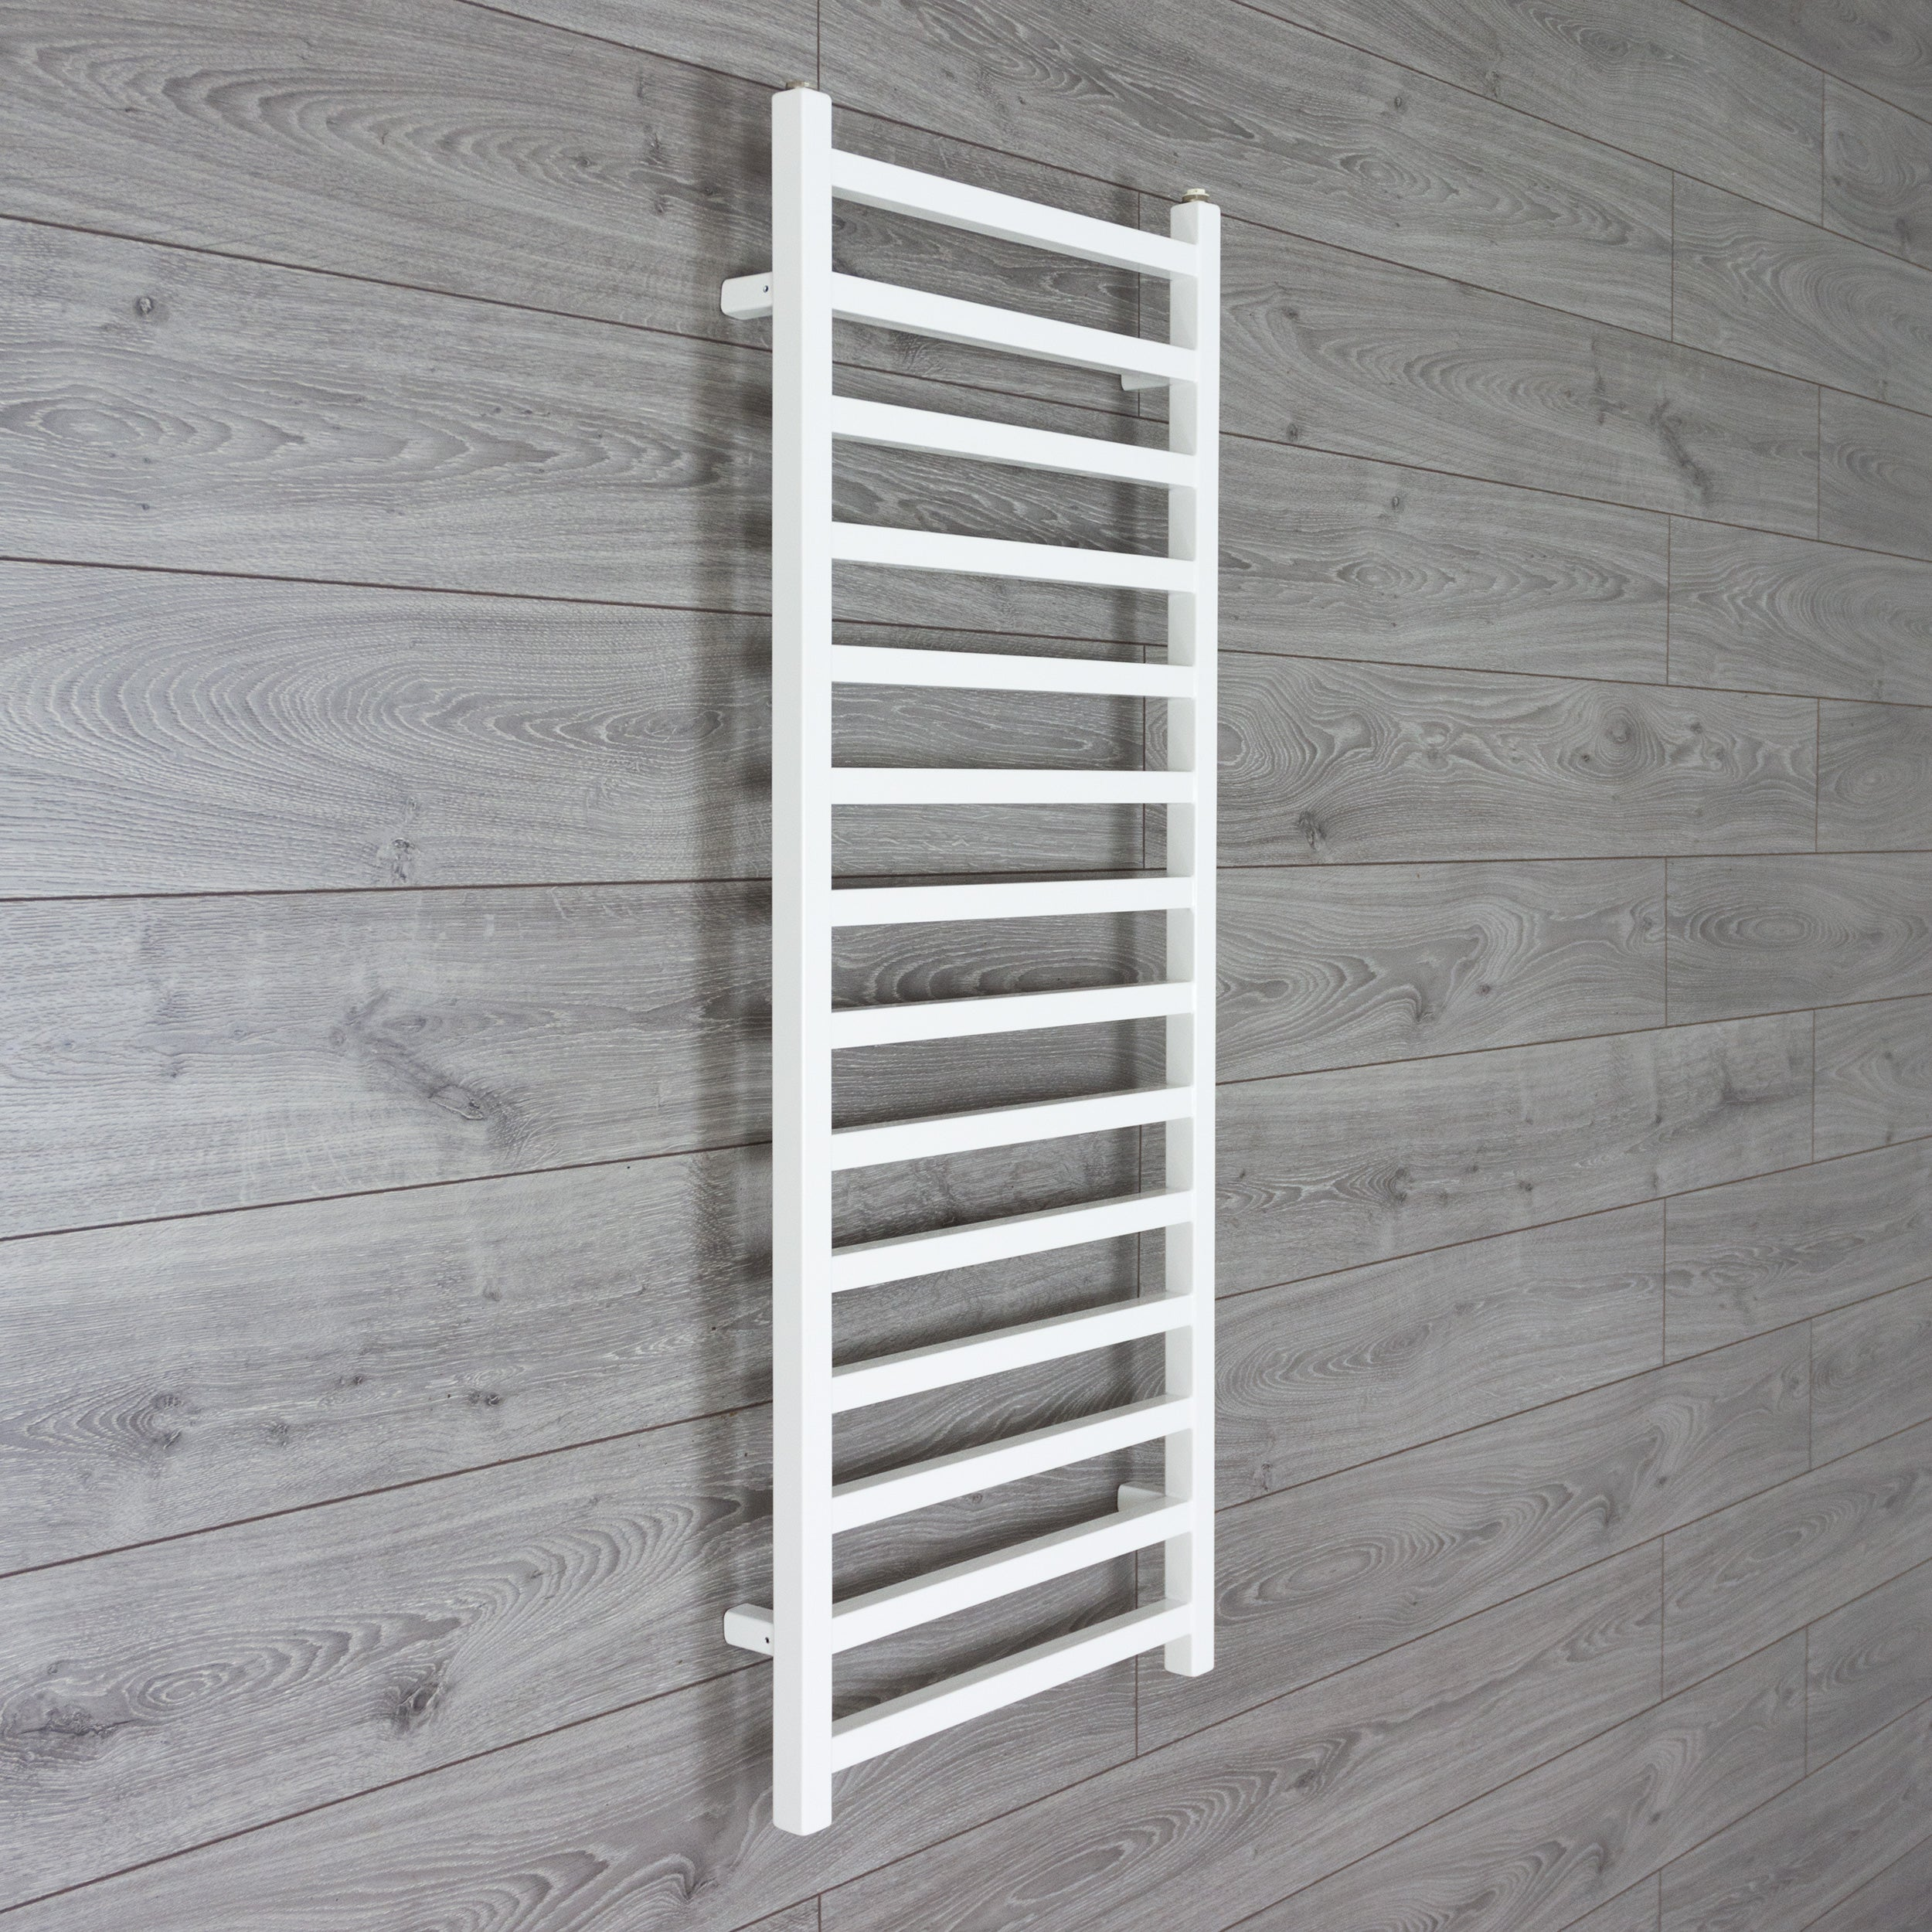 500mm 1200 mm Wide Square Tube Designer Heated Bathroom Towel Rail Radiator White Antracite